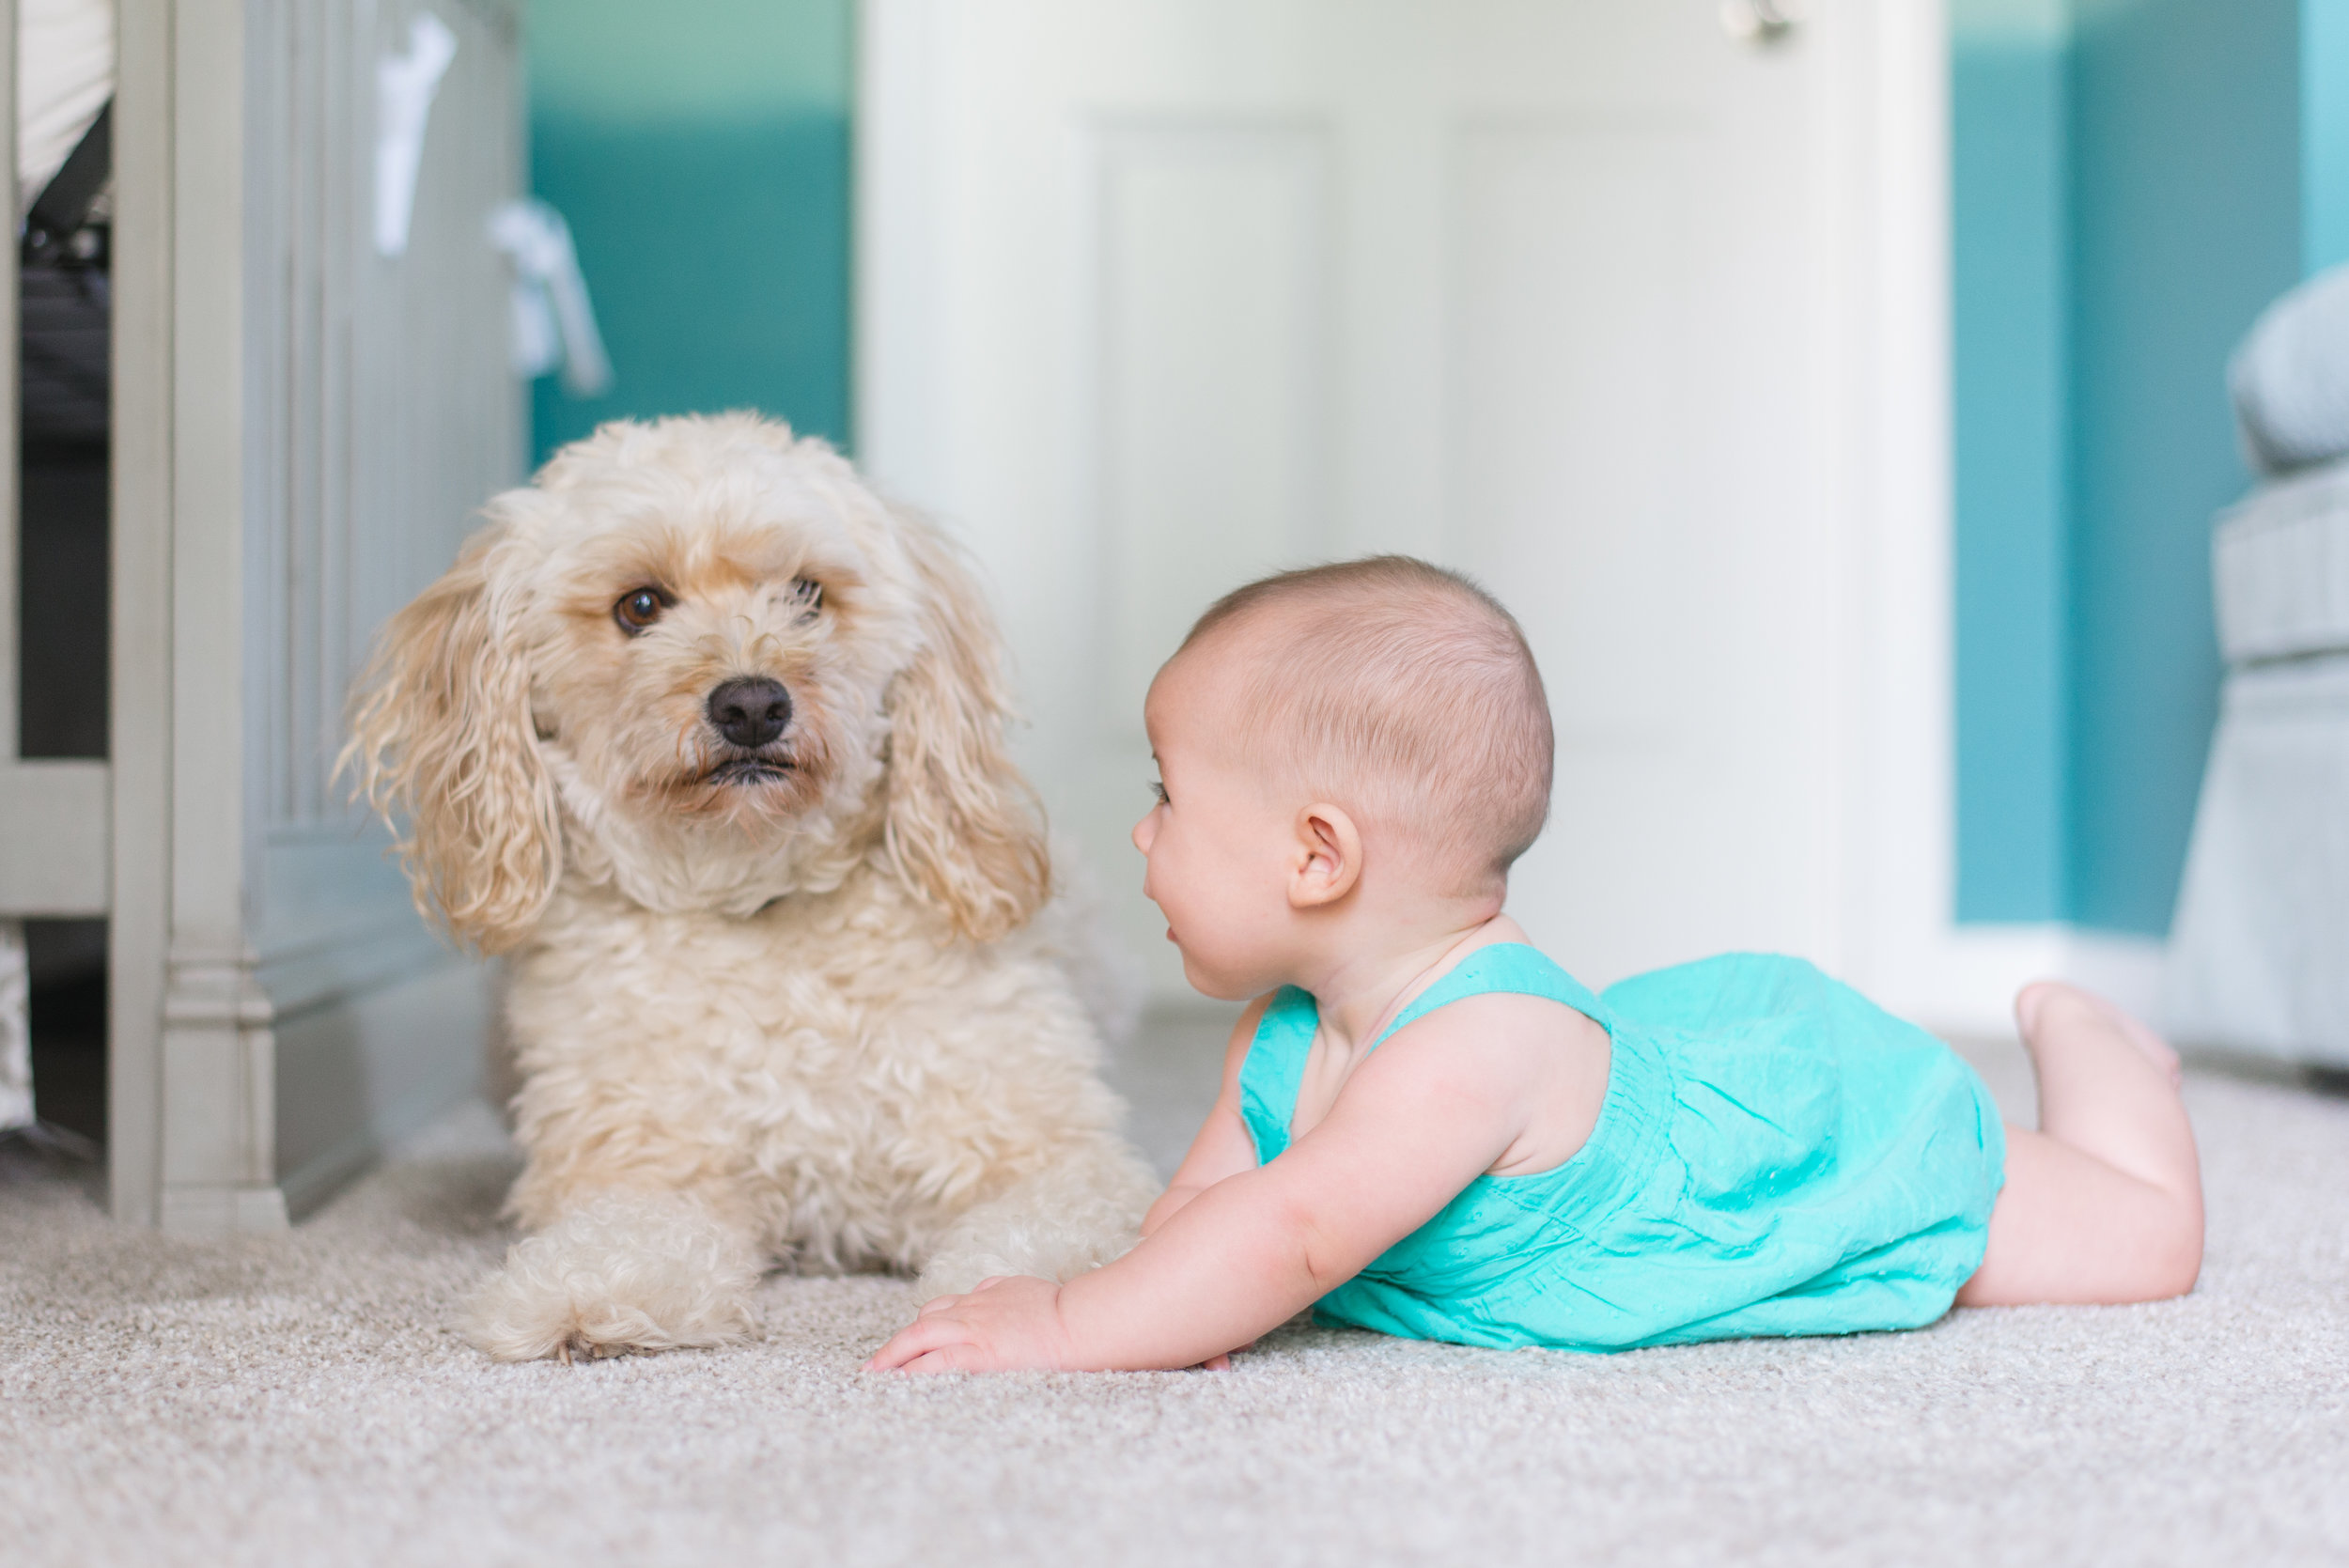 Introducing Pets to a Baby - Bringing a newborn home does not mean you need to rehome your pet. Pets and babies are able to live together in the same home without any problems. If you fear your pet may not handle the adjustment, there are some specific things to do prior to bringing the baby home that will help with this adjustment.Here are some helpful articles to get started:Parents - Introducing Pet to Baby